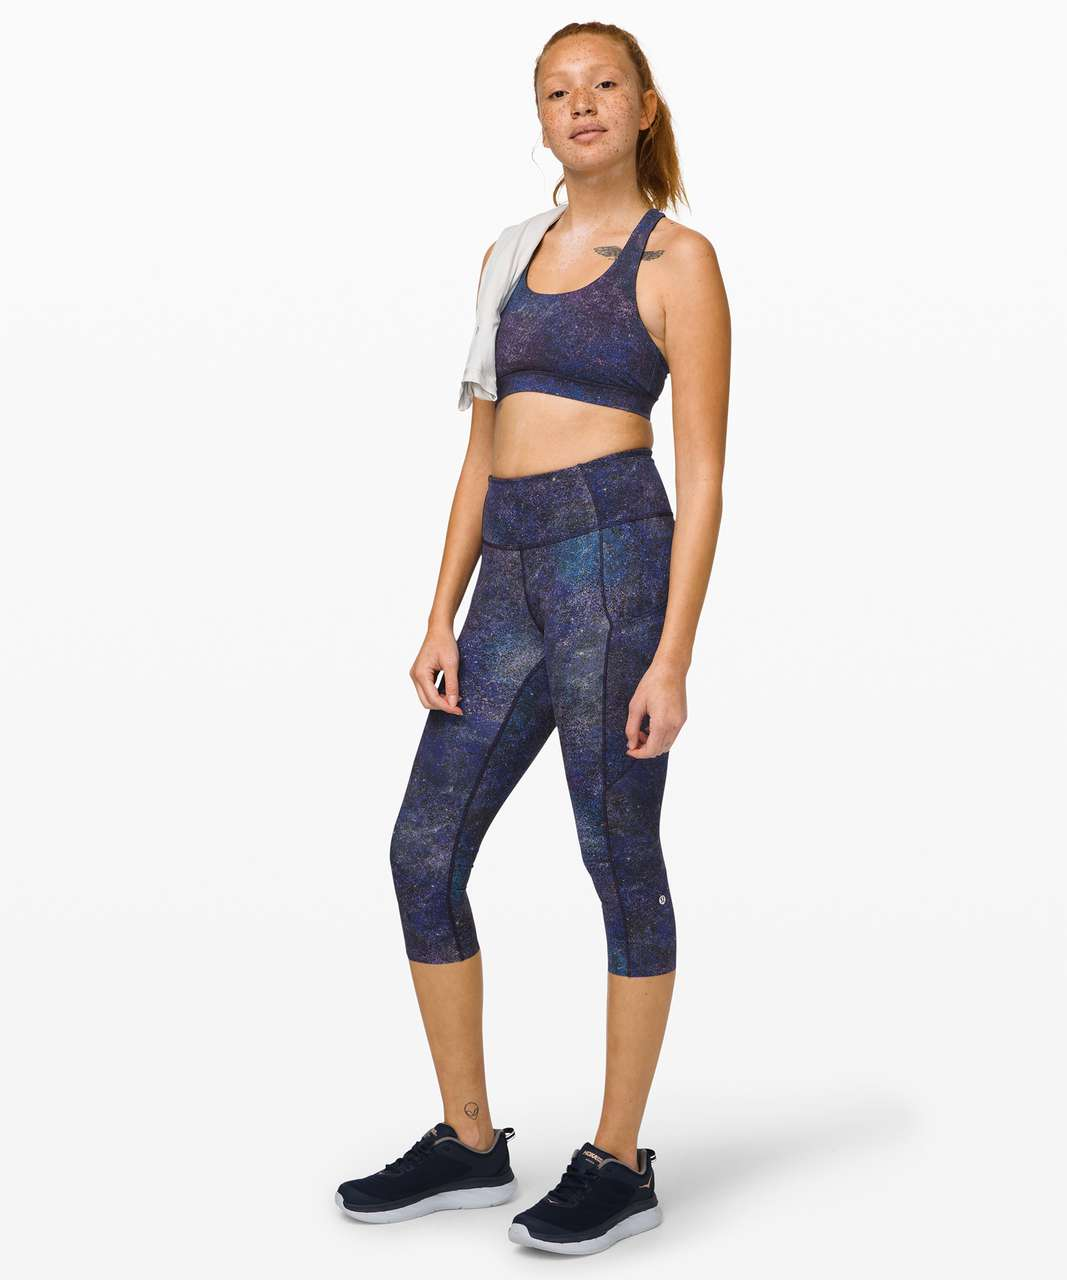 Lululemon Fast and Free High-Rise Crop II *Non-Reflective Nulux - Polar Lights Blue Multi